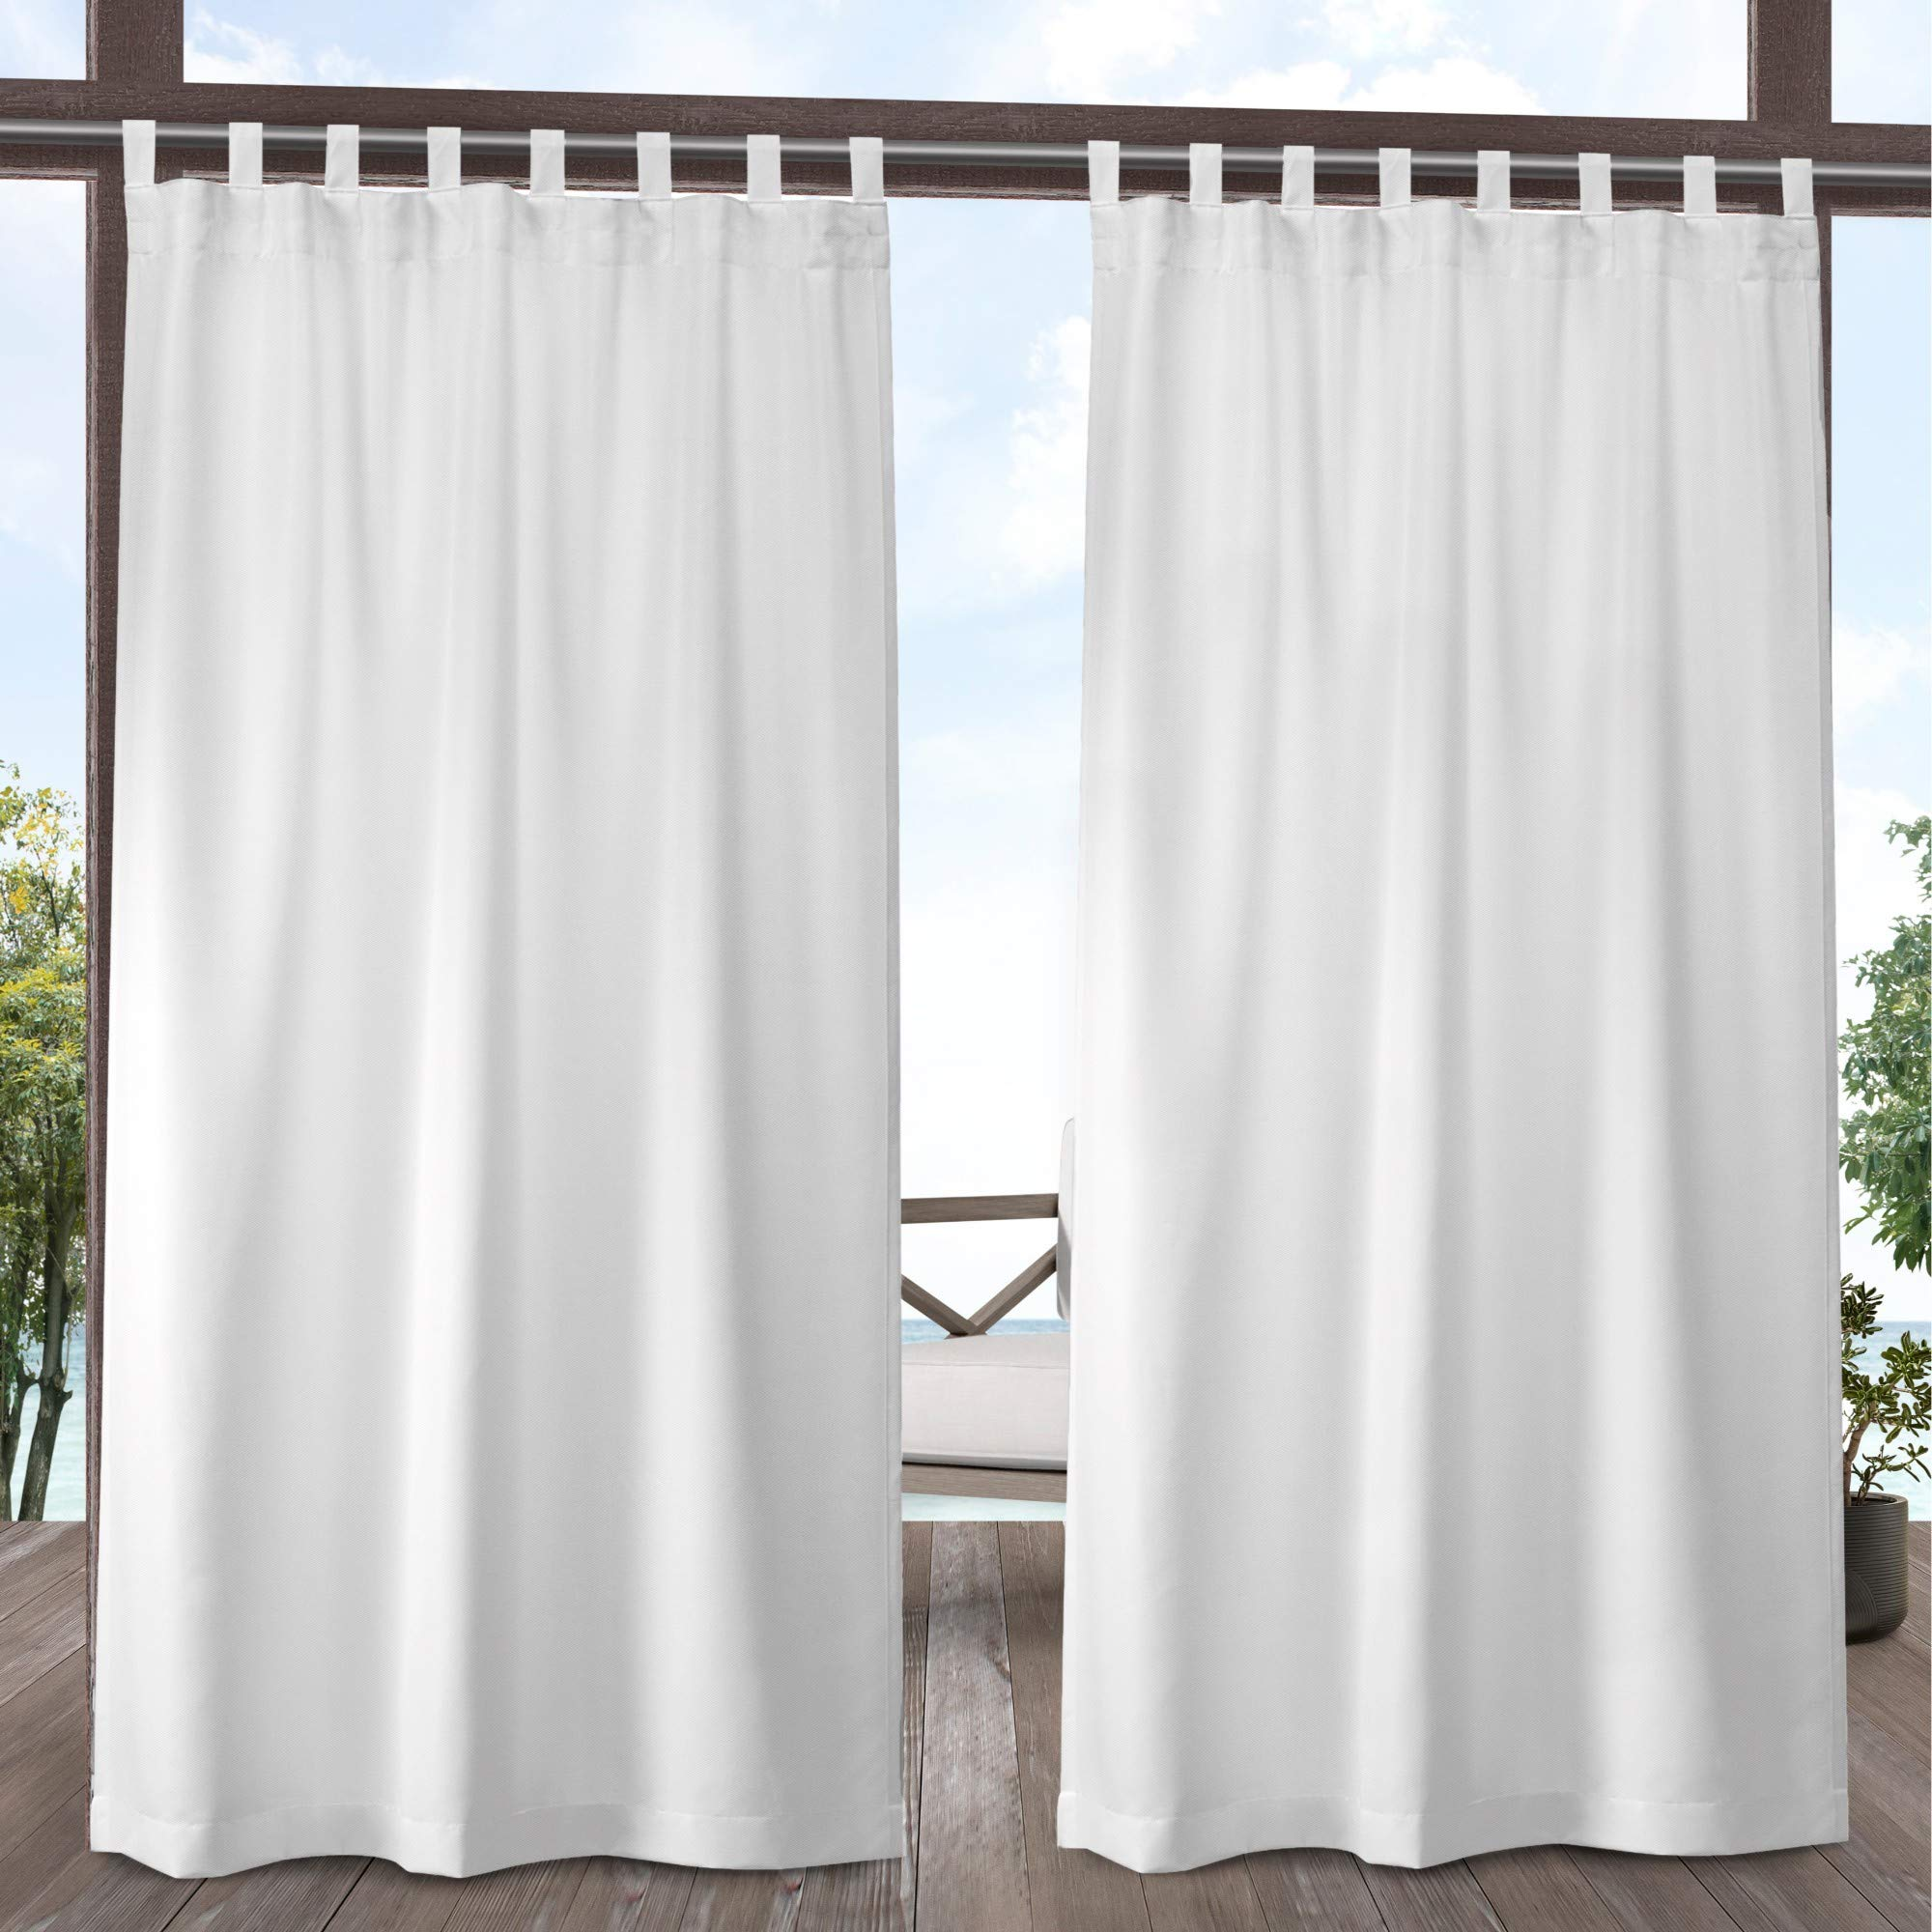 Exclusive Home Curtains Indoor/Outdoor Solid Panel Pair, 54x84, Winter White